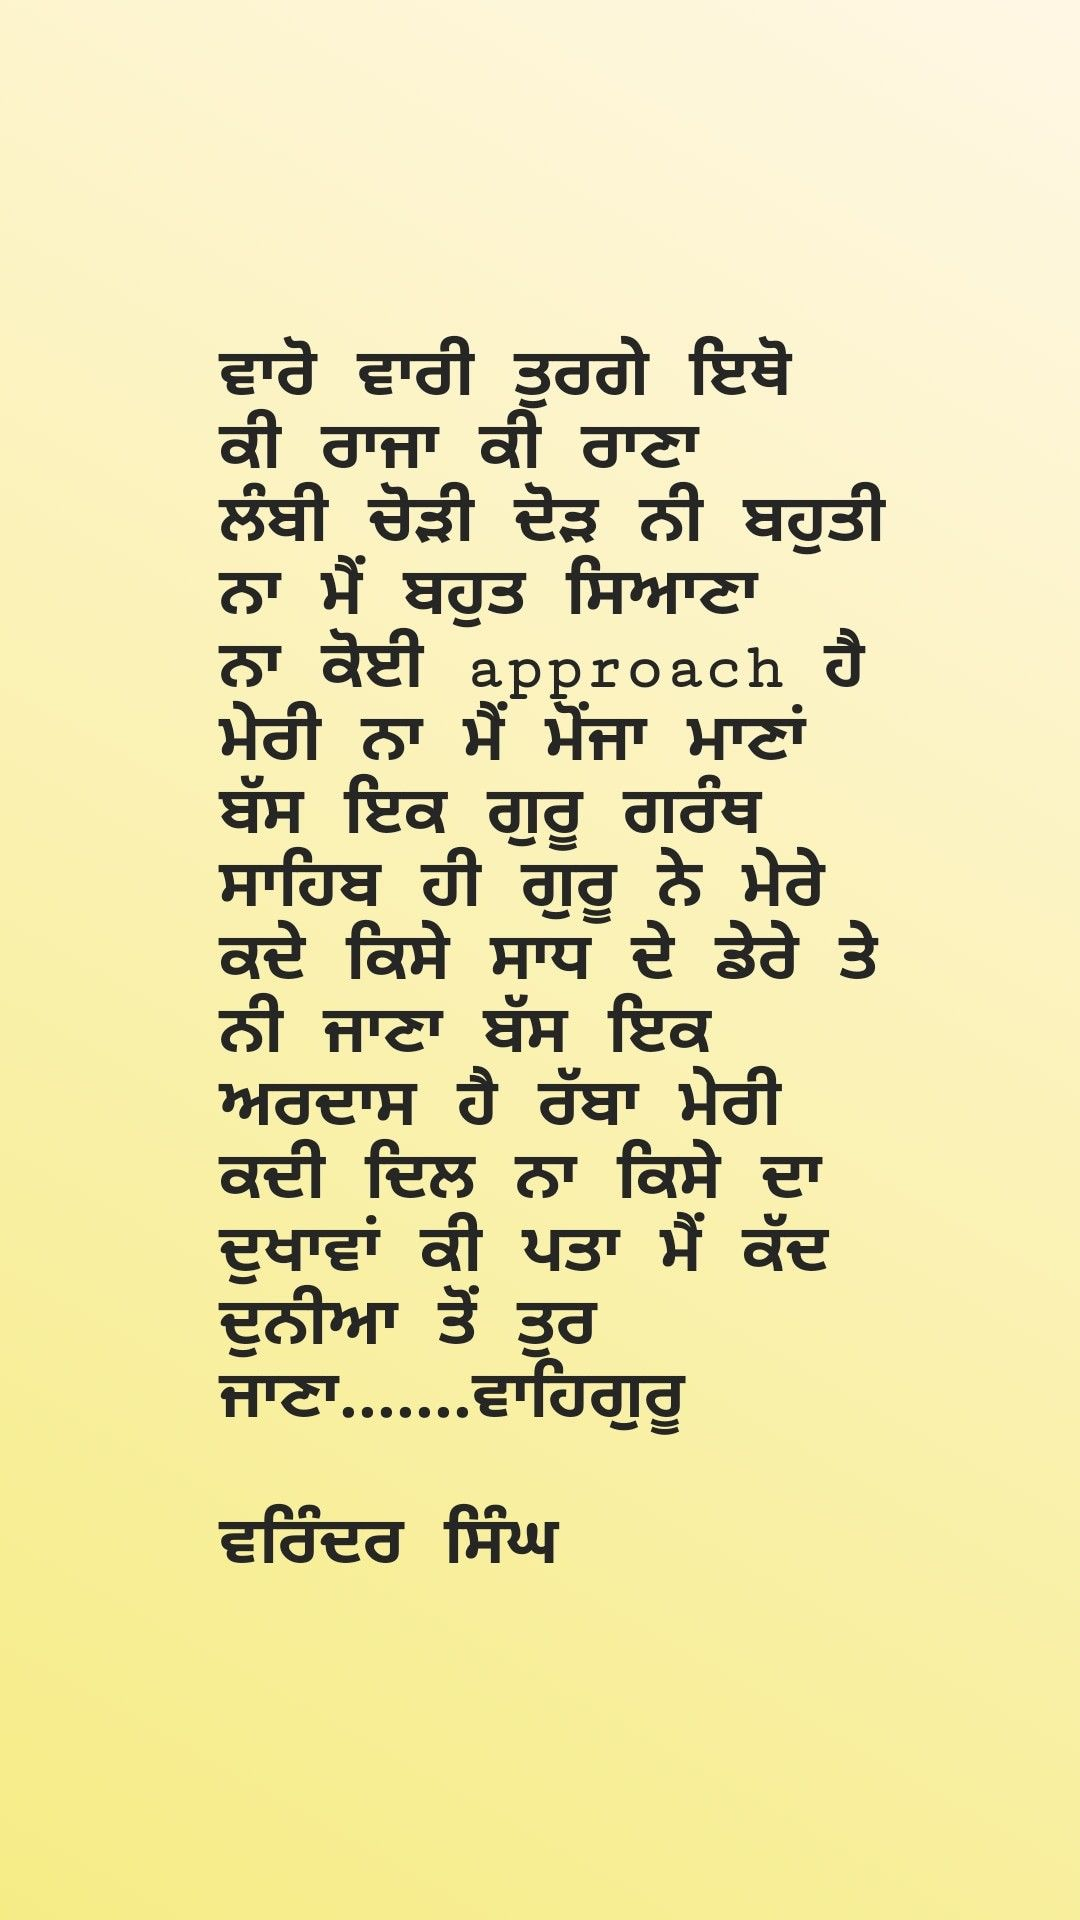 pin by varinder singh on ਵੈਲੀ quotes about god bff quotes